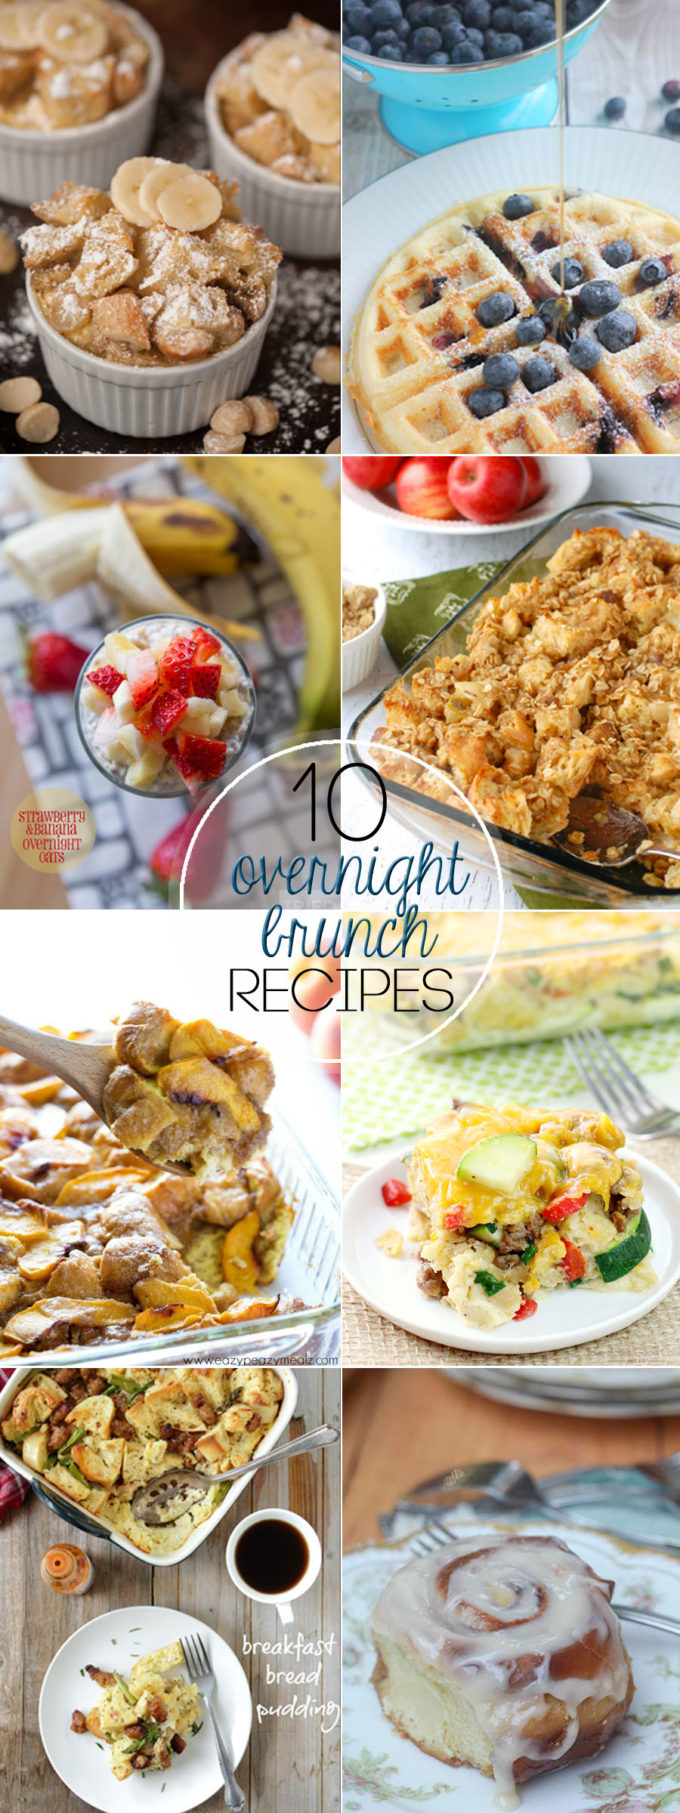 10-overnight-brunch-recipes-pinterest